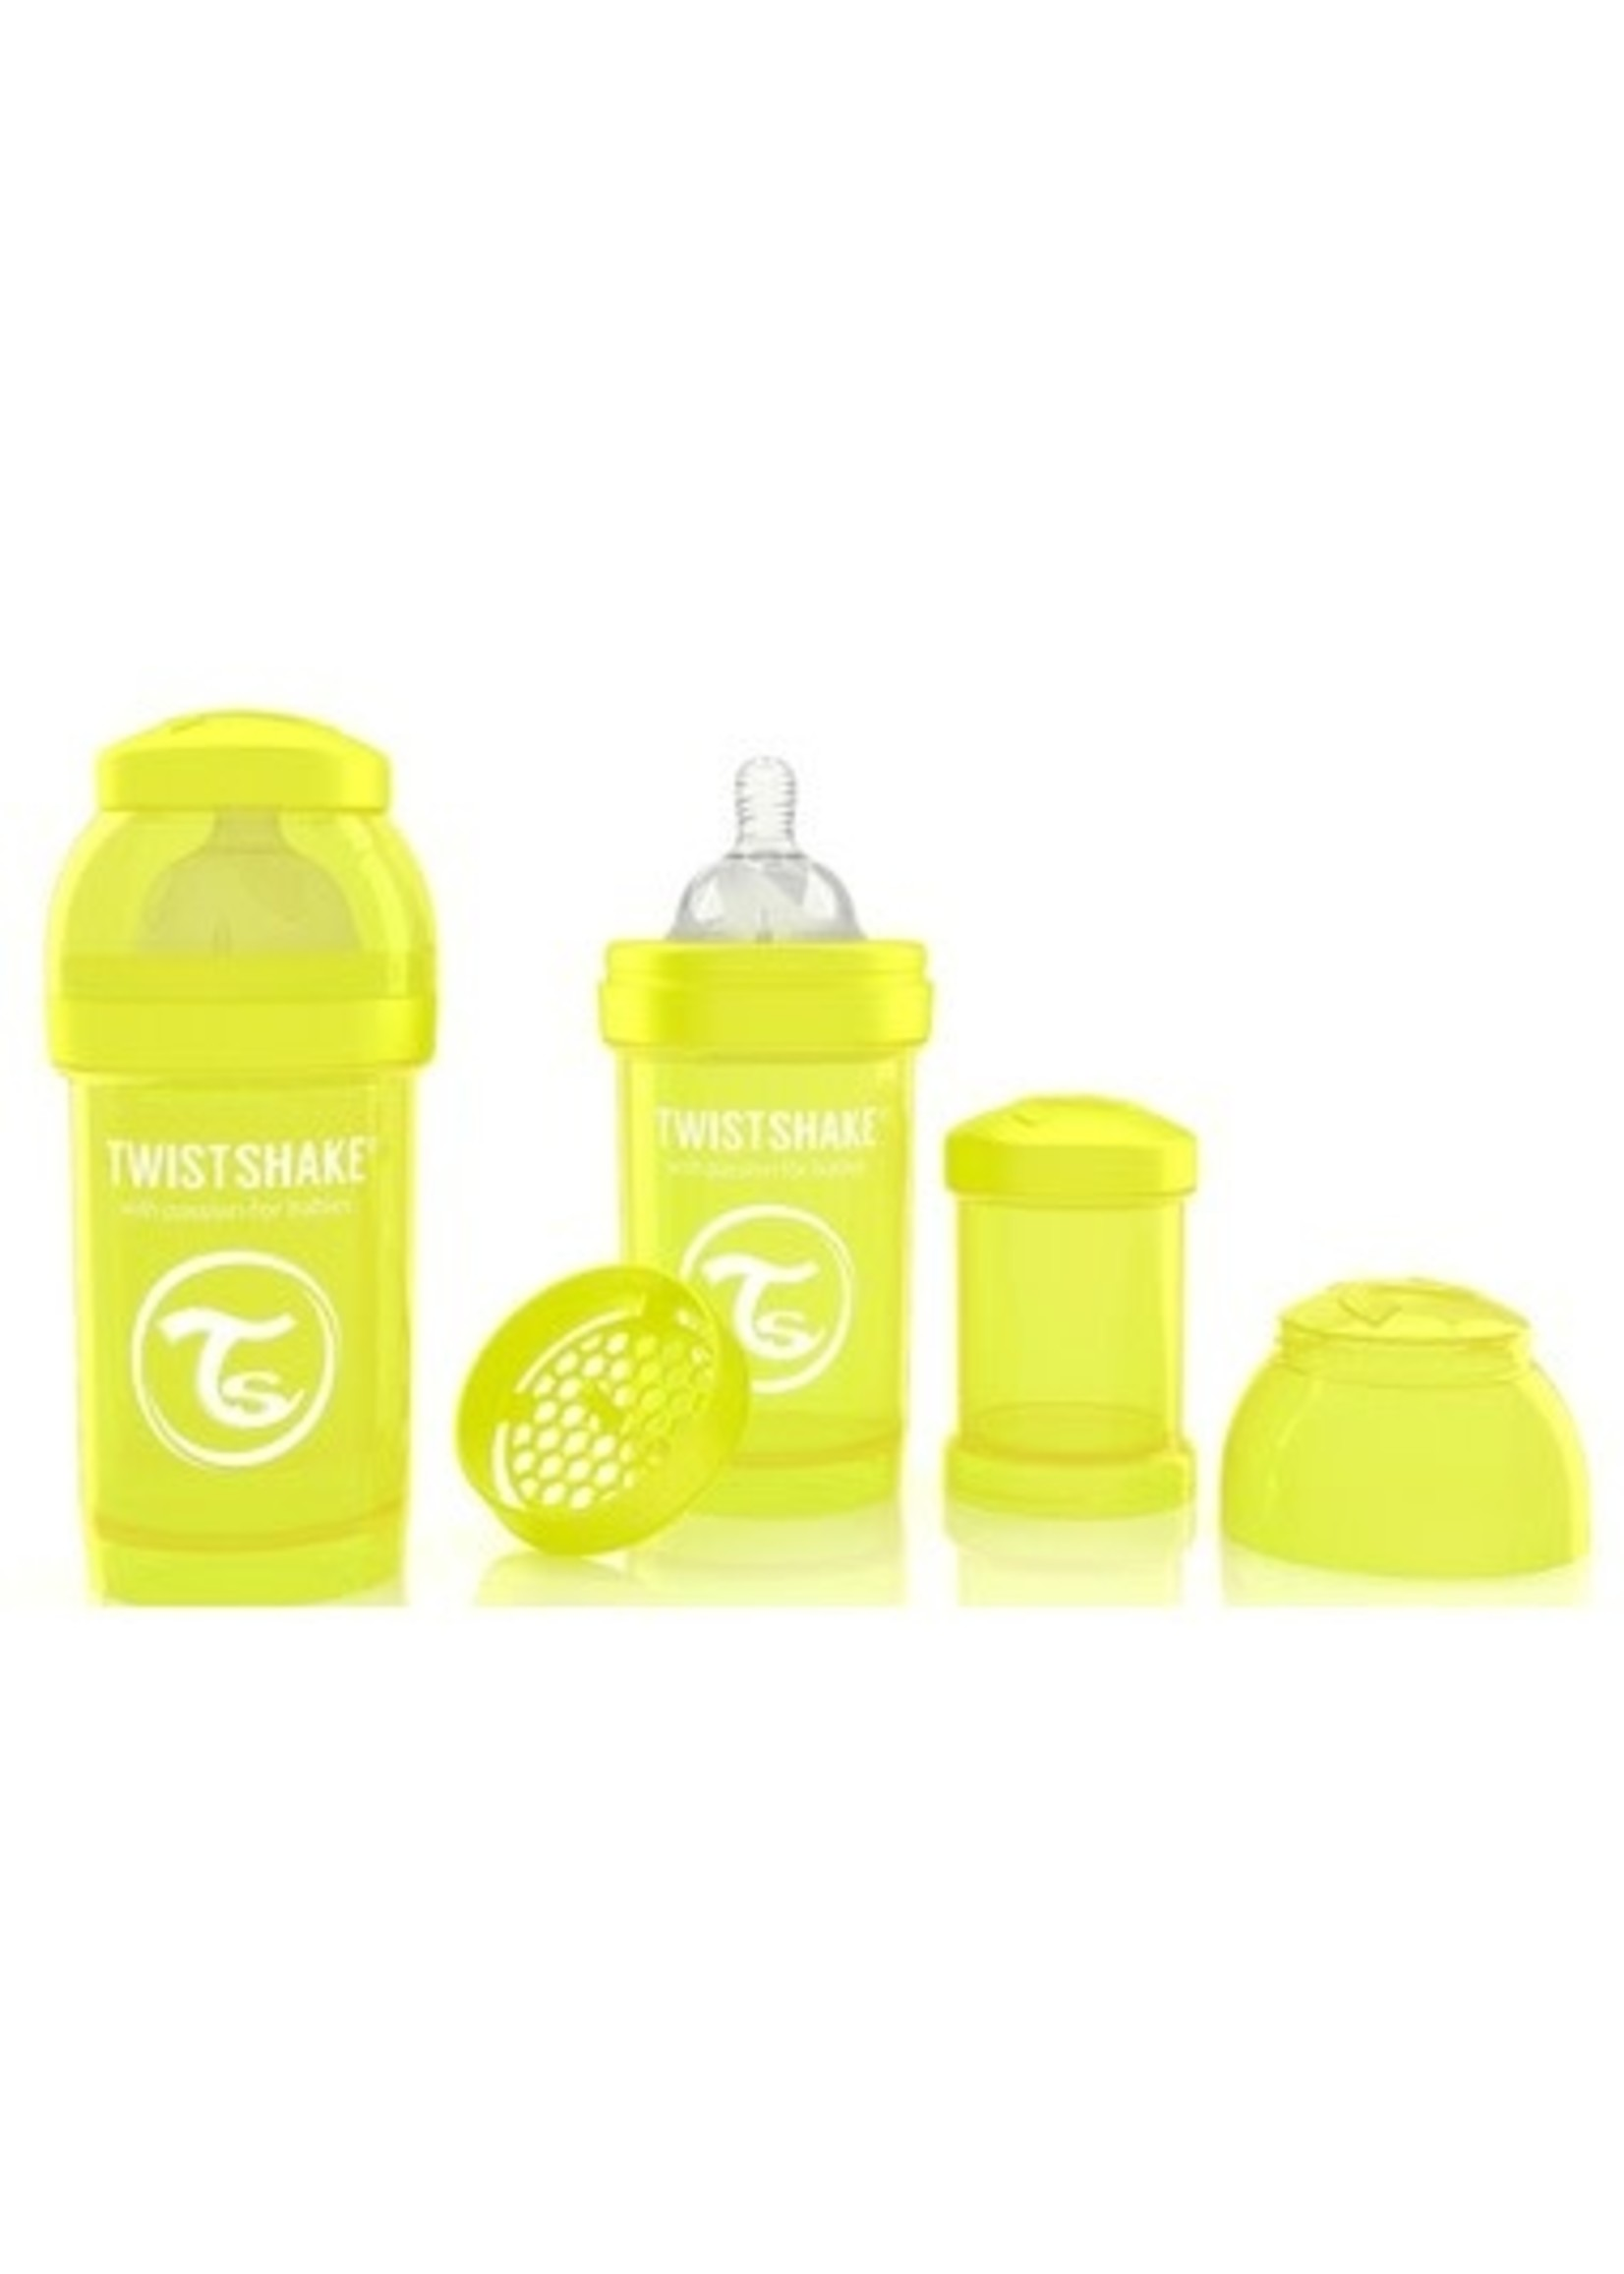 Twistshake Twistshake Bottle 260ml (Assorted)